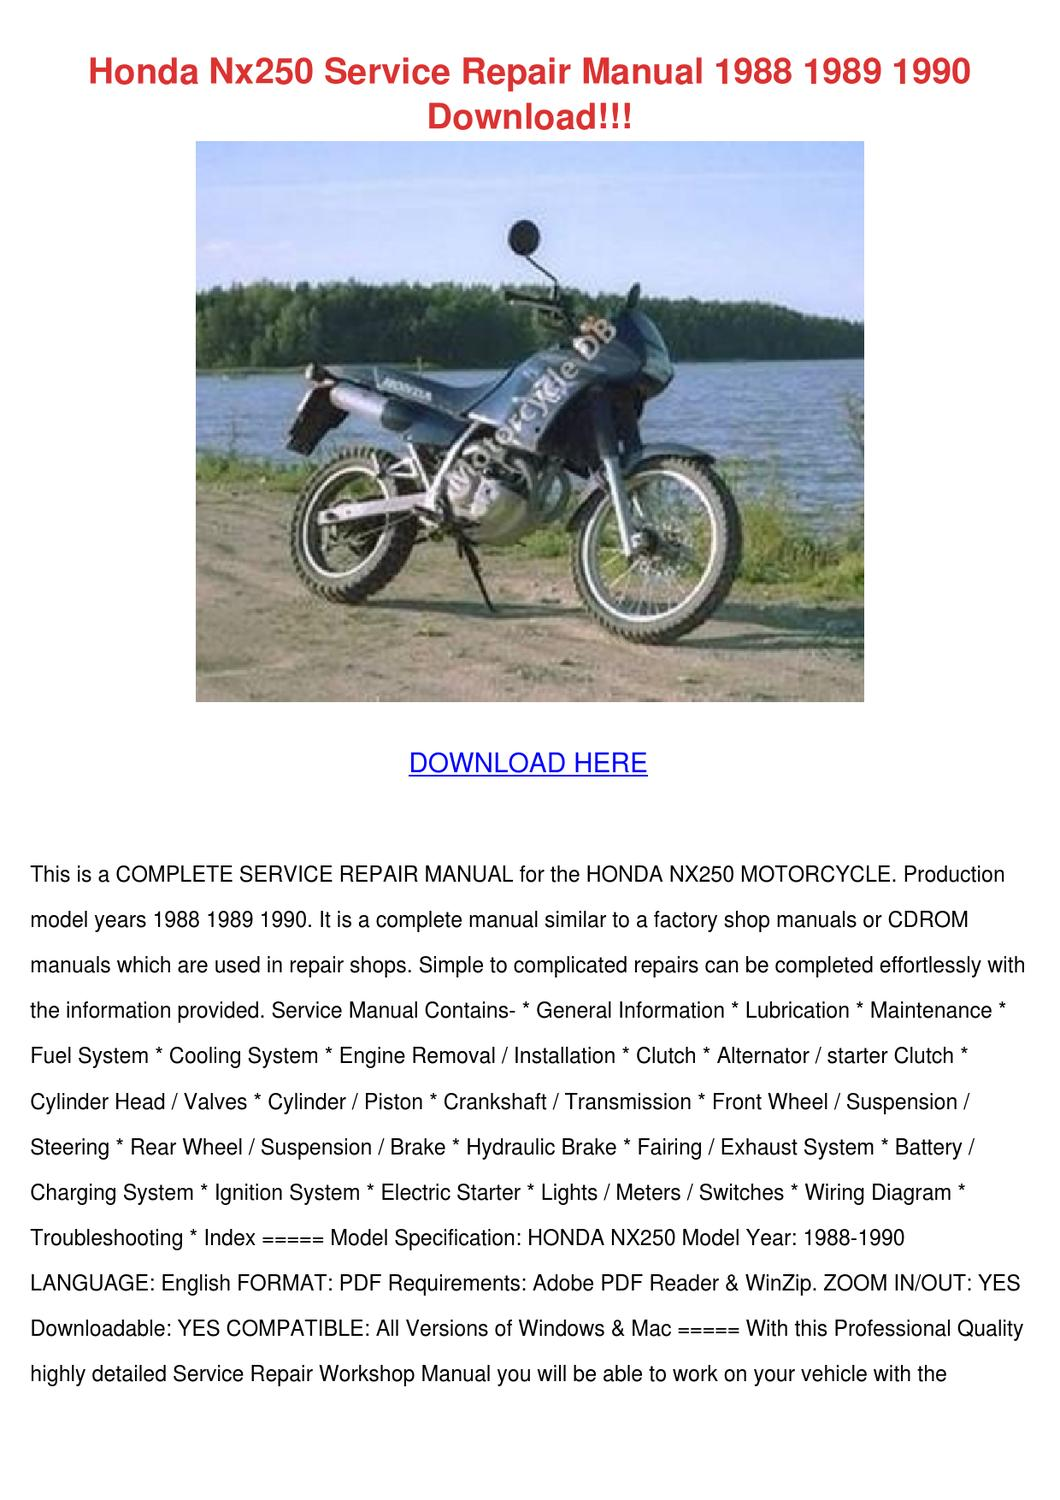 Honda Nx250 Service Repair Manual 1988 1989 1 By Temika Jawad Issuu Xl500r Wiring Diagram